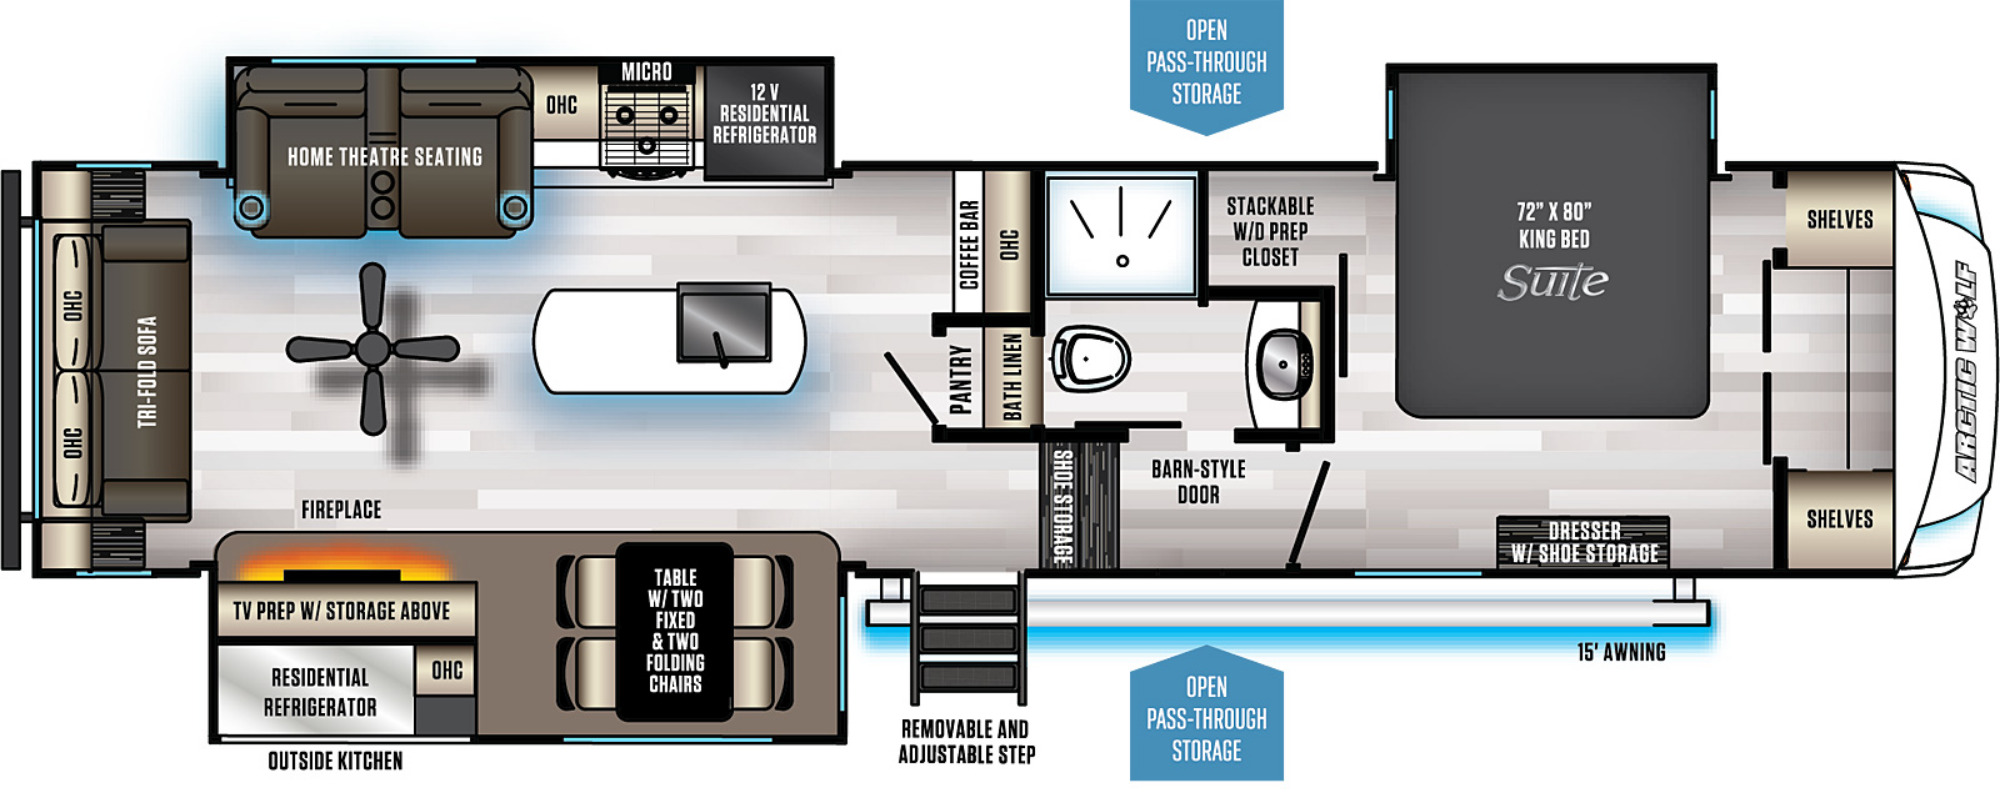 View Floor Plan for 2021 FOREST RIVER ARCTIC WOLF 3550SUITE